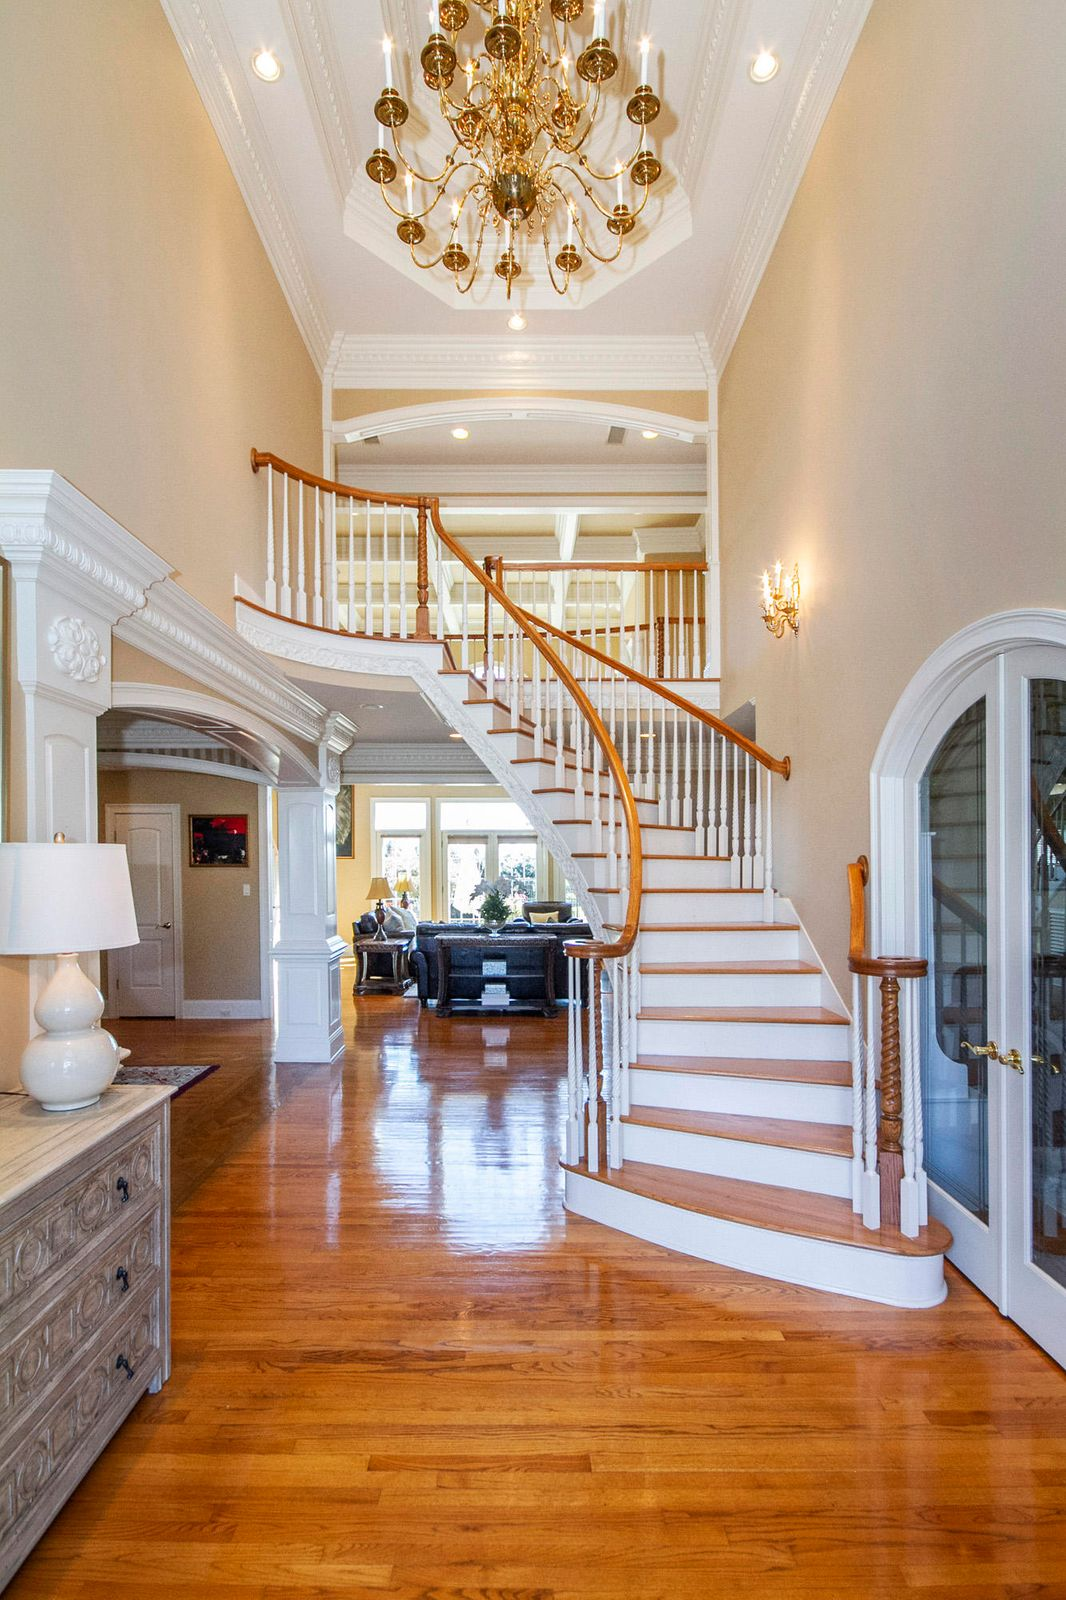 Two Story with double trey ceiling